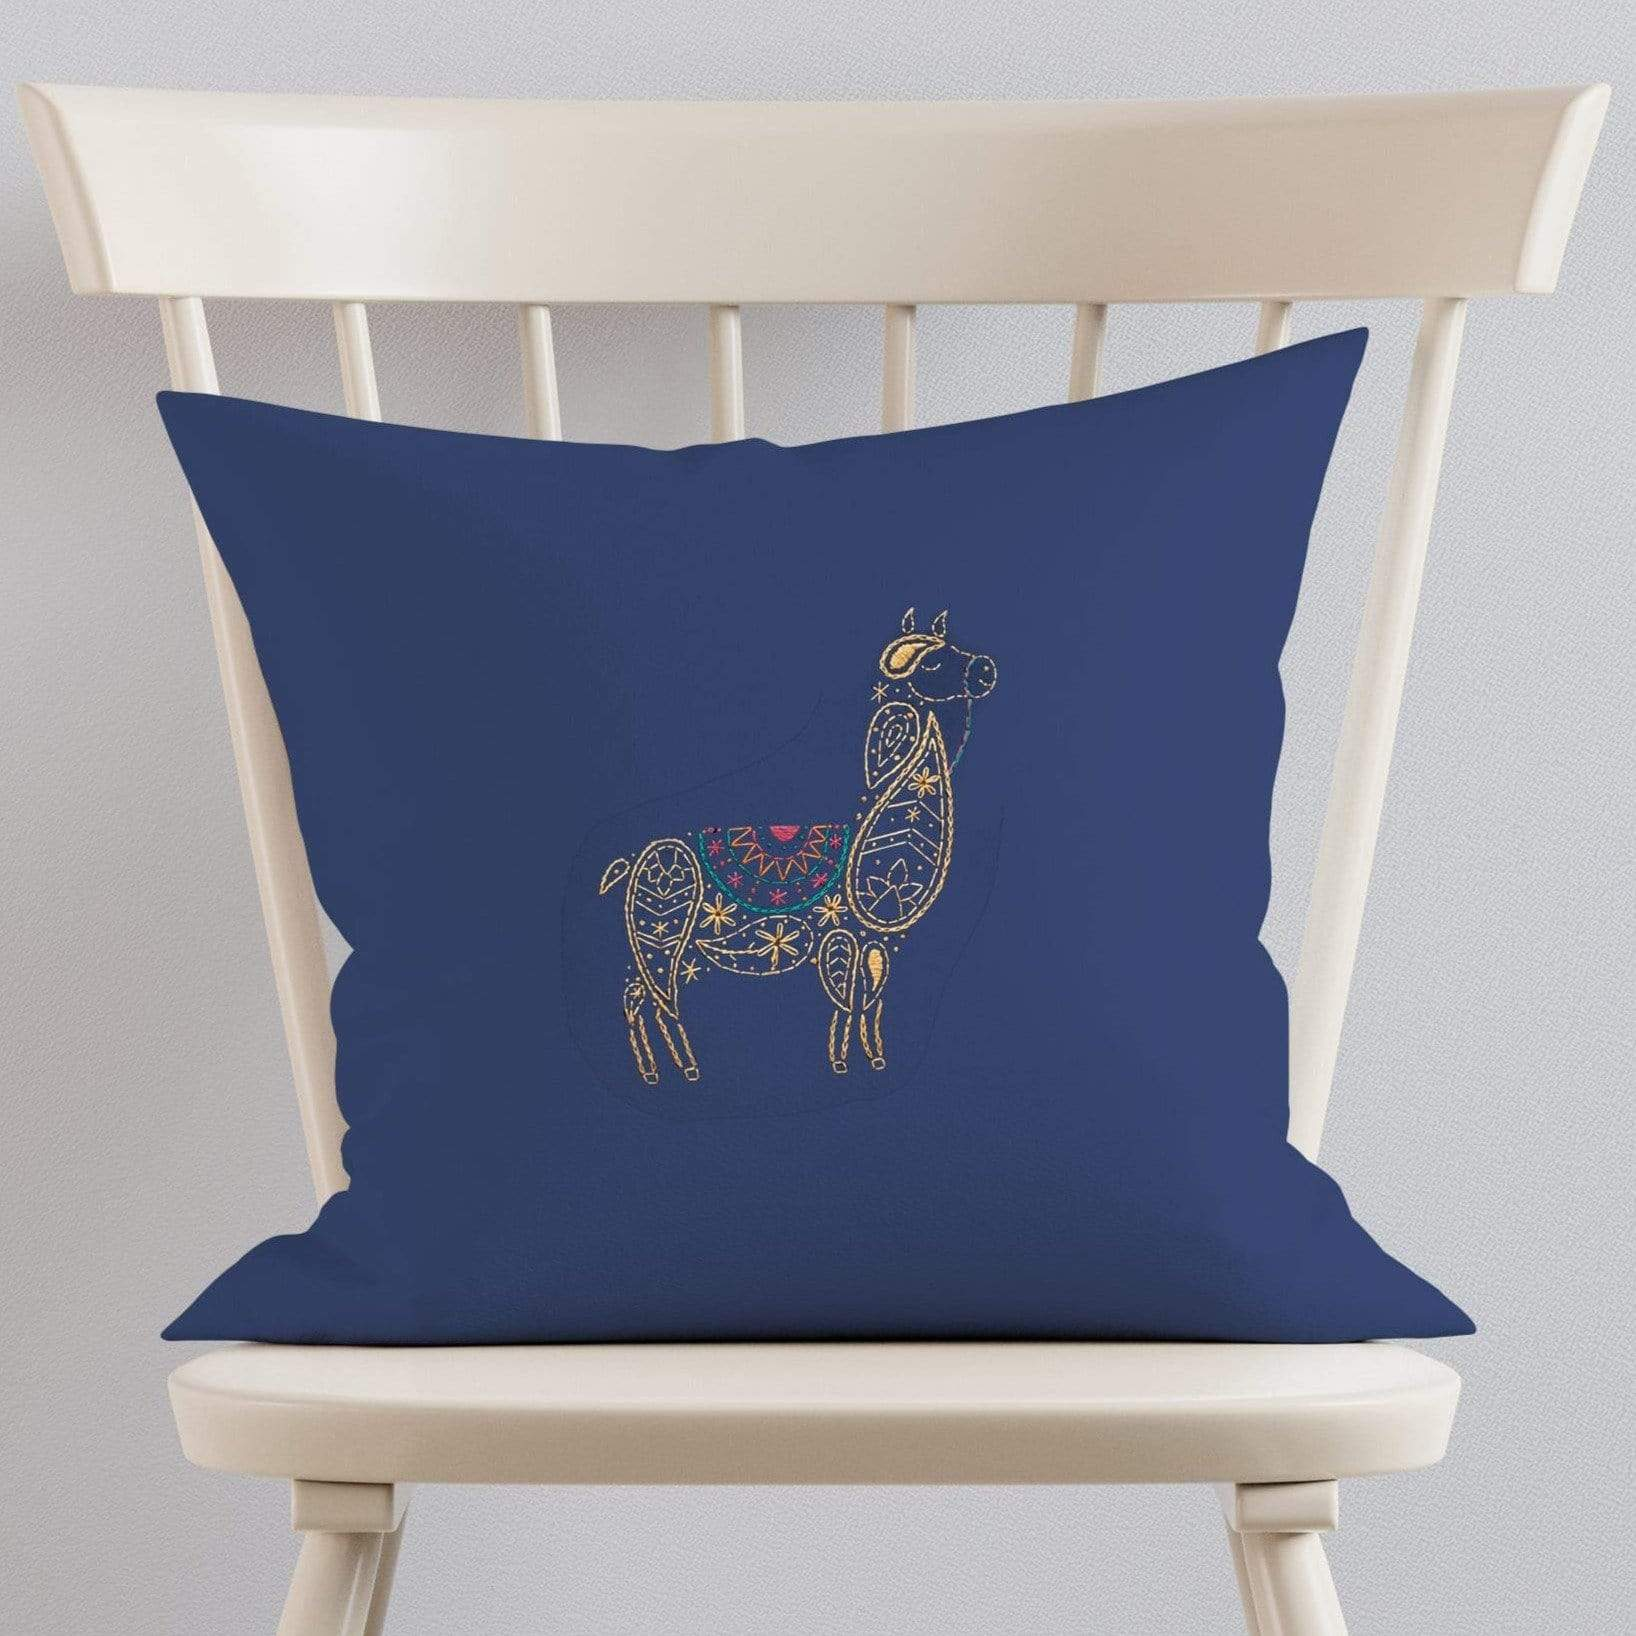 Paraffle Embroidery Cushion Embroidery Kit Llama Cushion Kit & Pattern